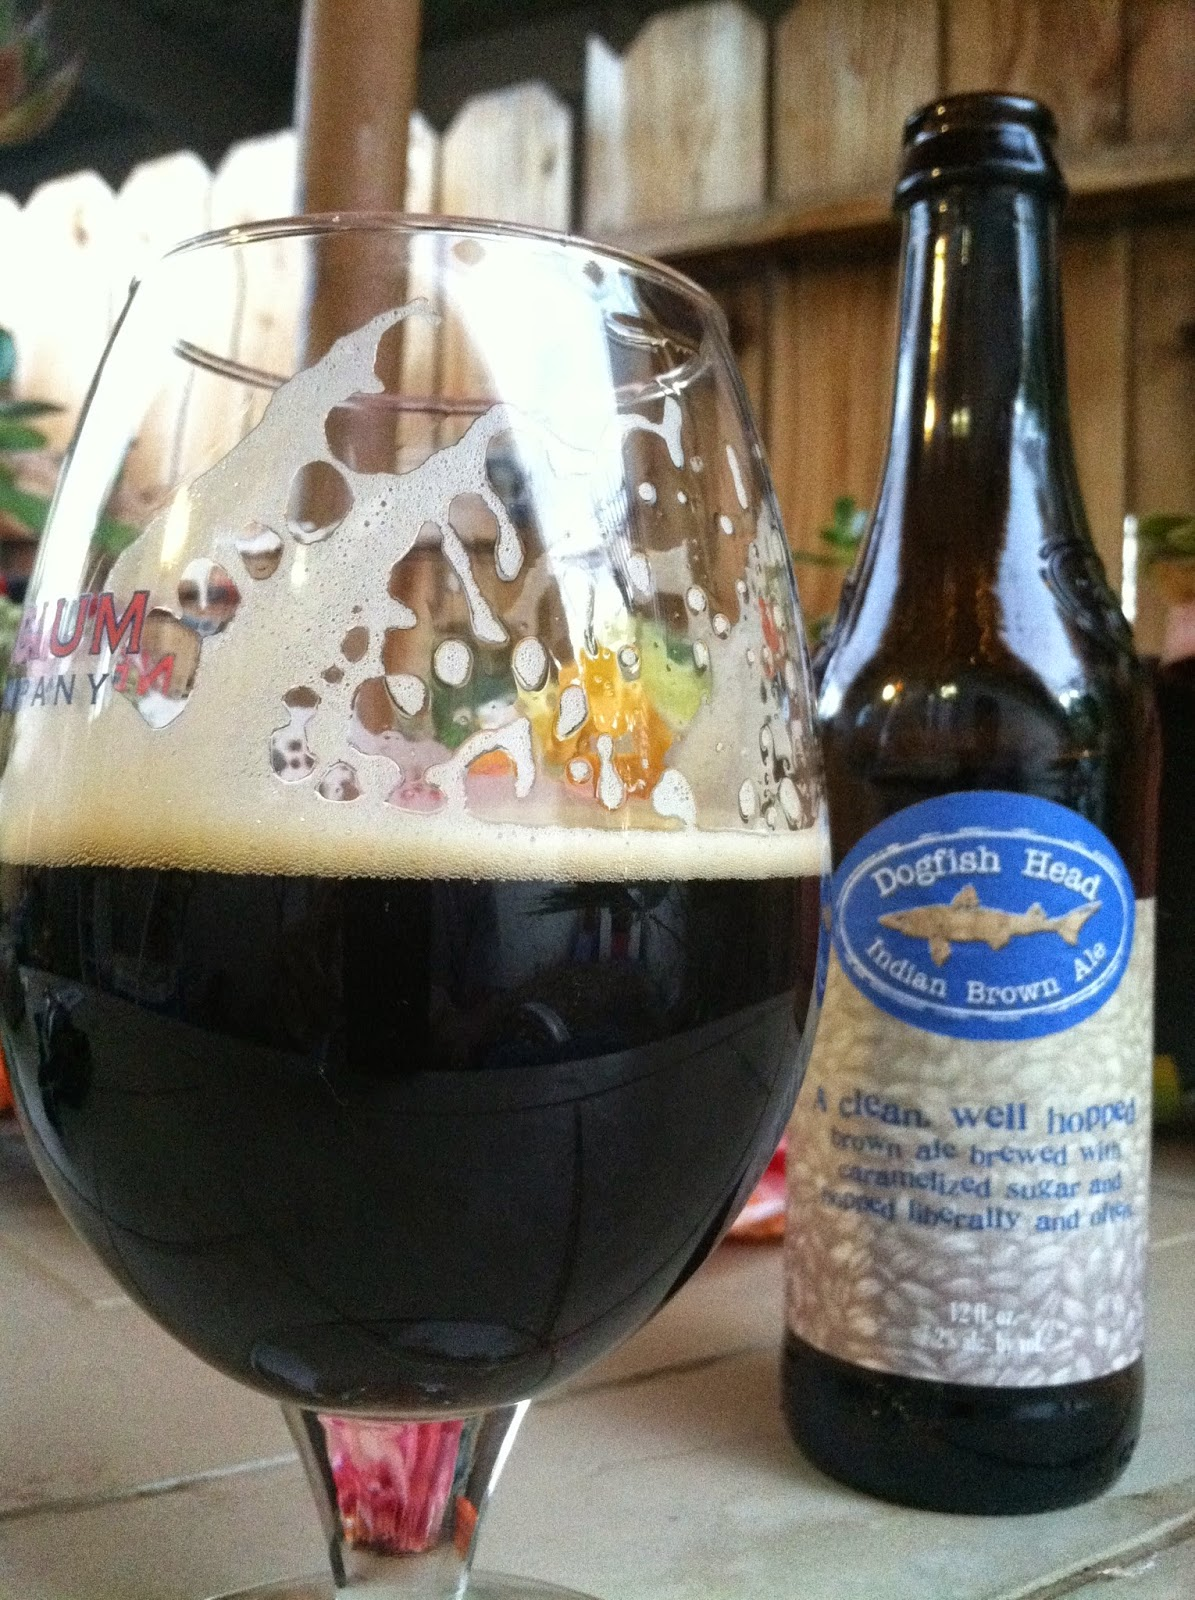 Dogfish Head Indian Brown Ale 2